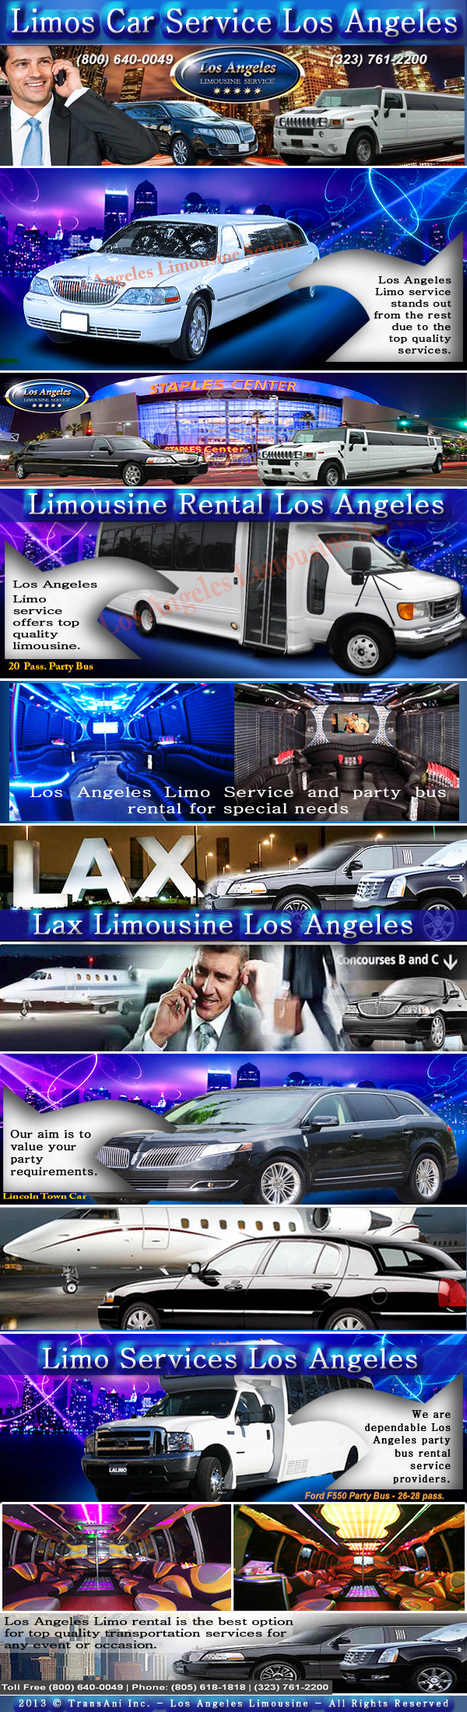 Limos Car Service Los Angeles | Limos Car Service Los Angeles | Scoop.it